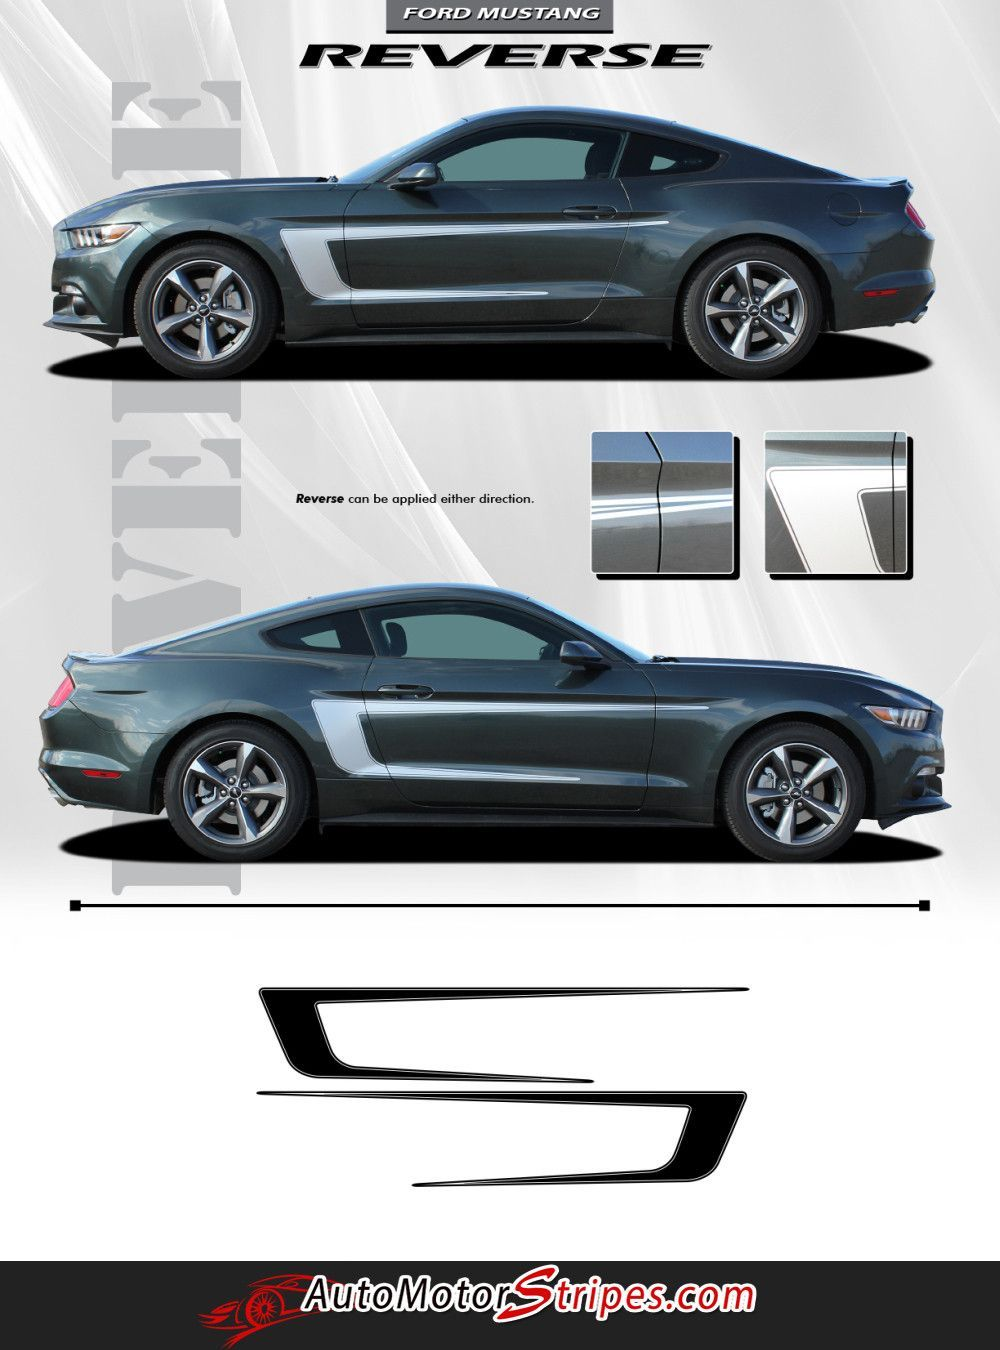 2017 2016 Ford Mustang Reverse C Stripe Boss 302 Style Side Stripes Vinyl Graphics 3m Decals